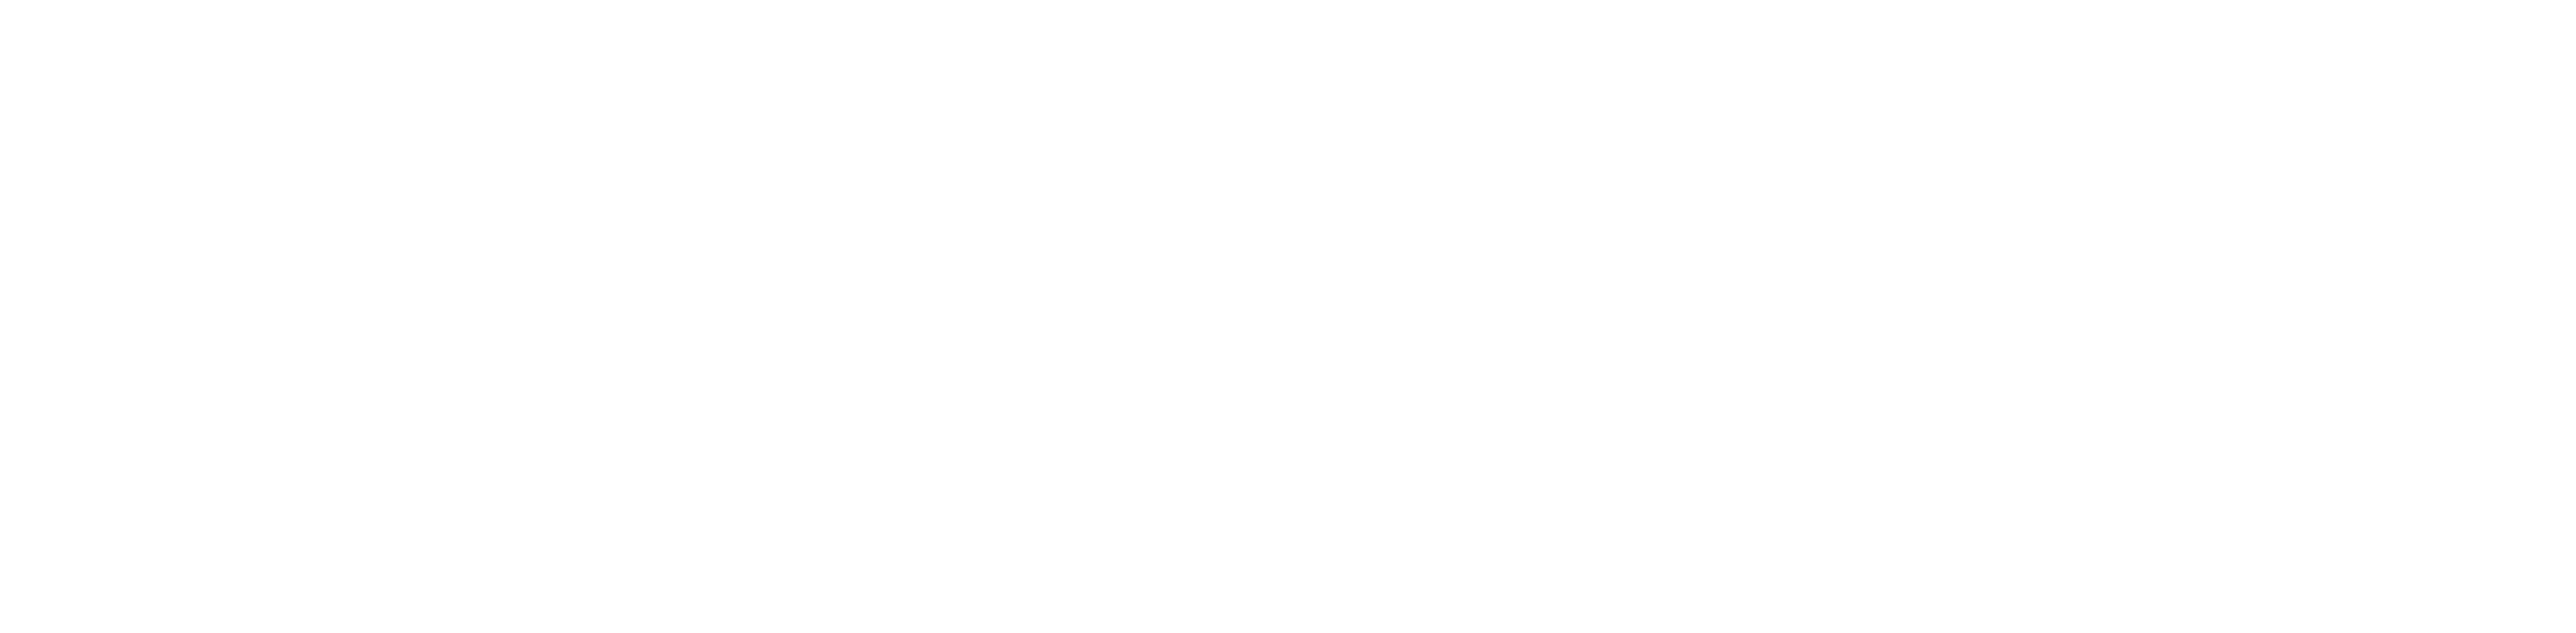 First news in world